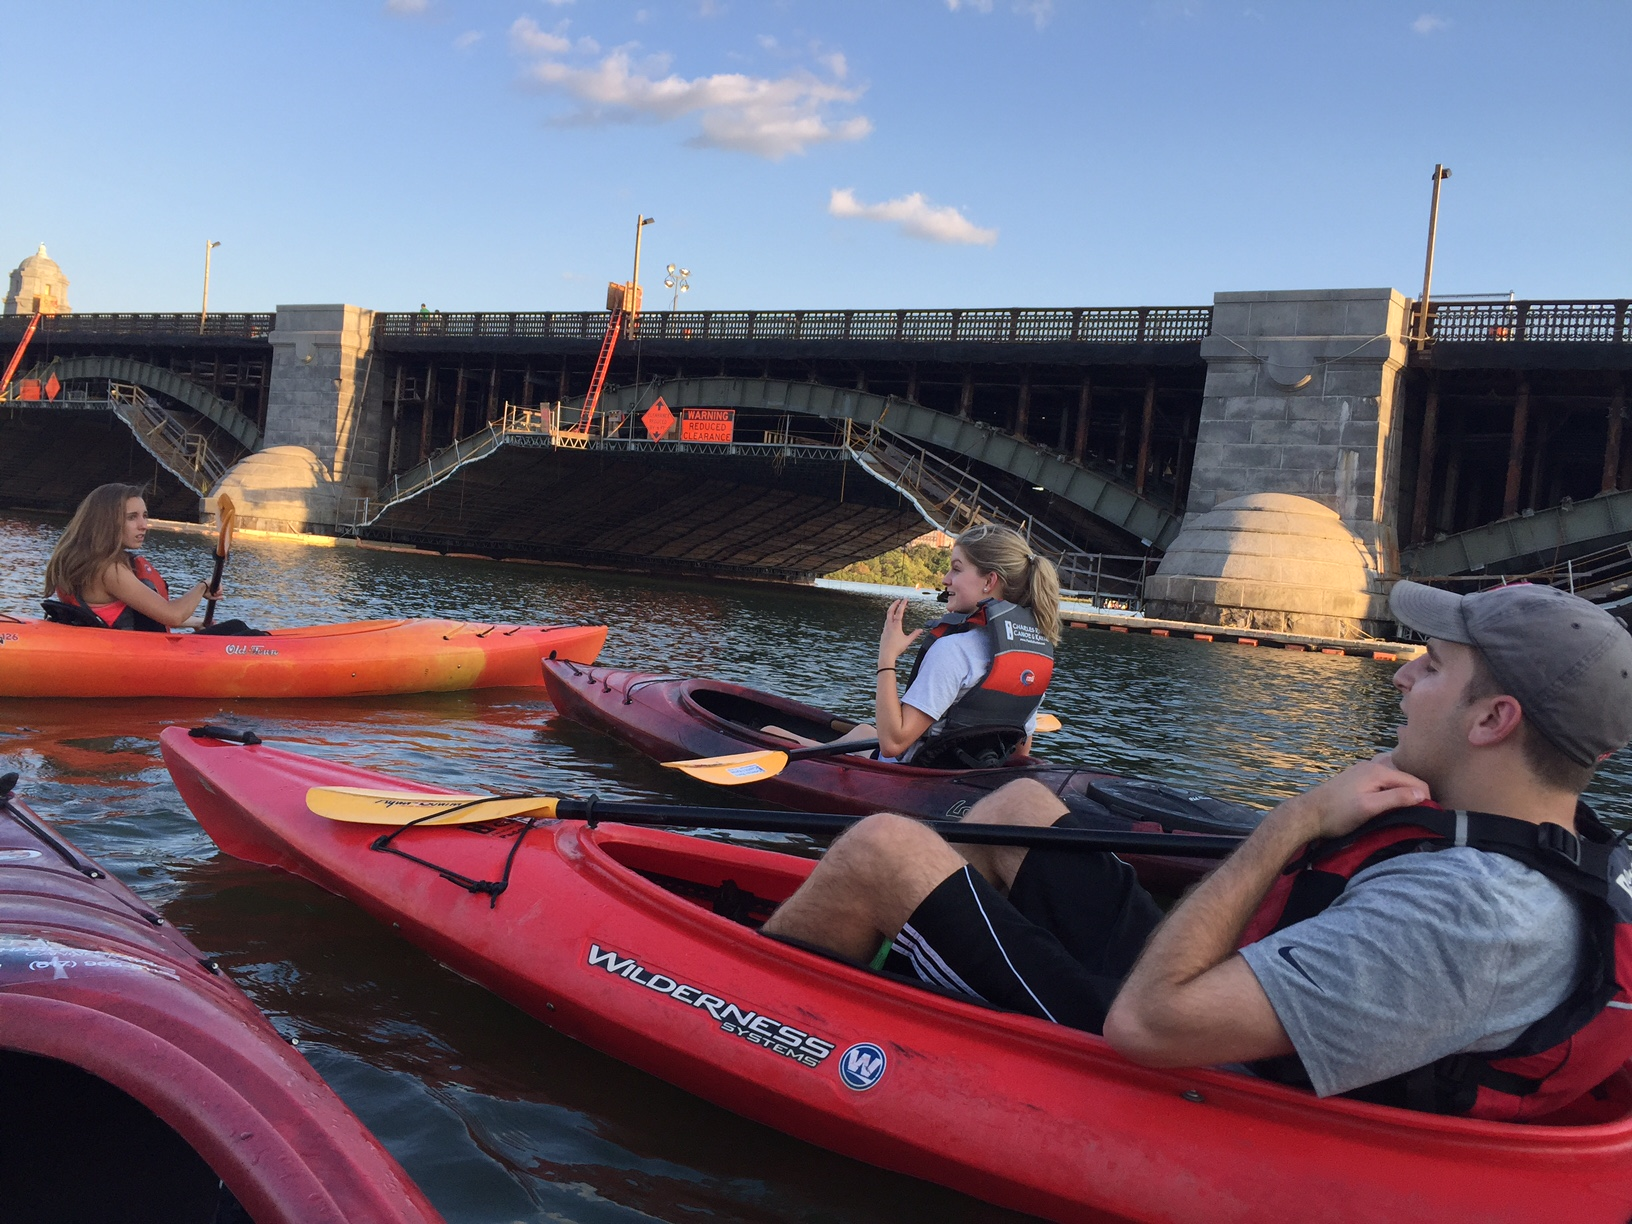 The Boston office spends a happy hour kayaking on the Charles River